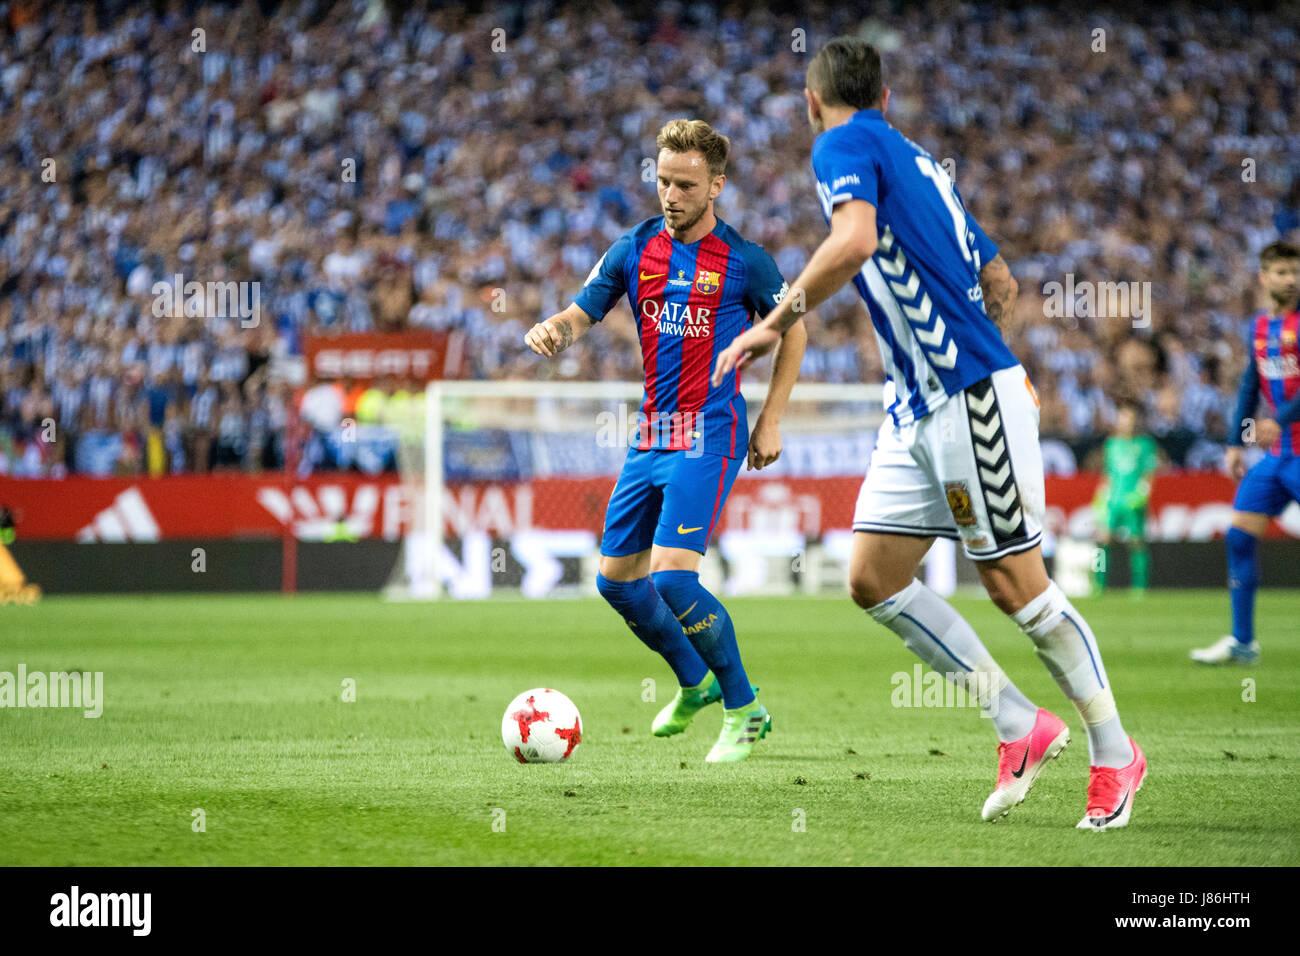 Madrid, Spain. 27th May, 2017. Ivan Rakitic (FC Barcelona) in action during the football match of Final of Spanish - Stock Image